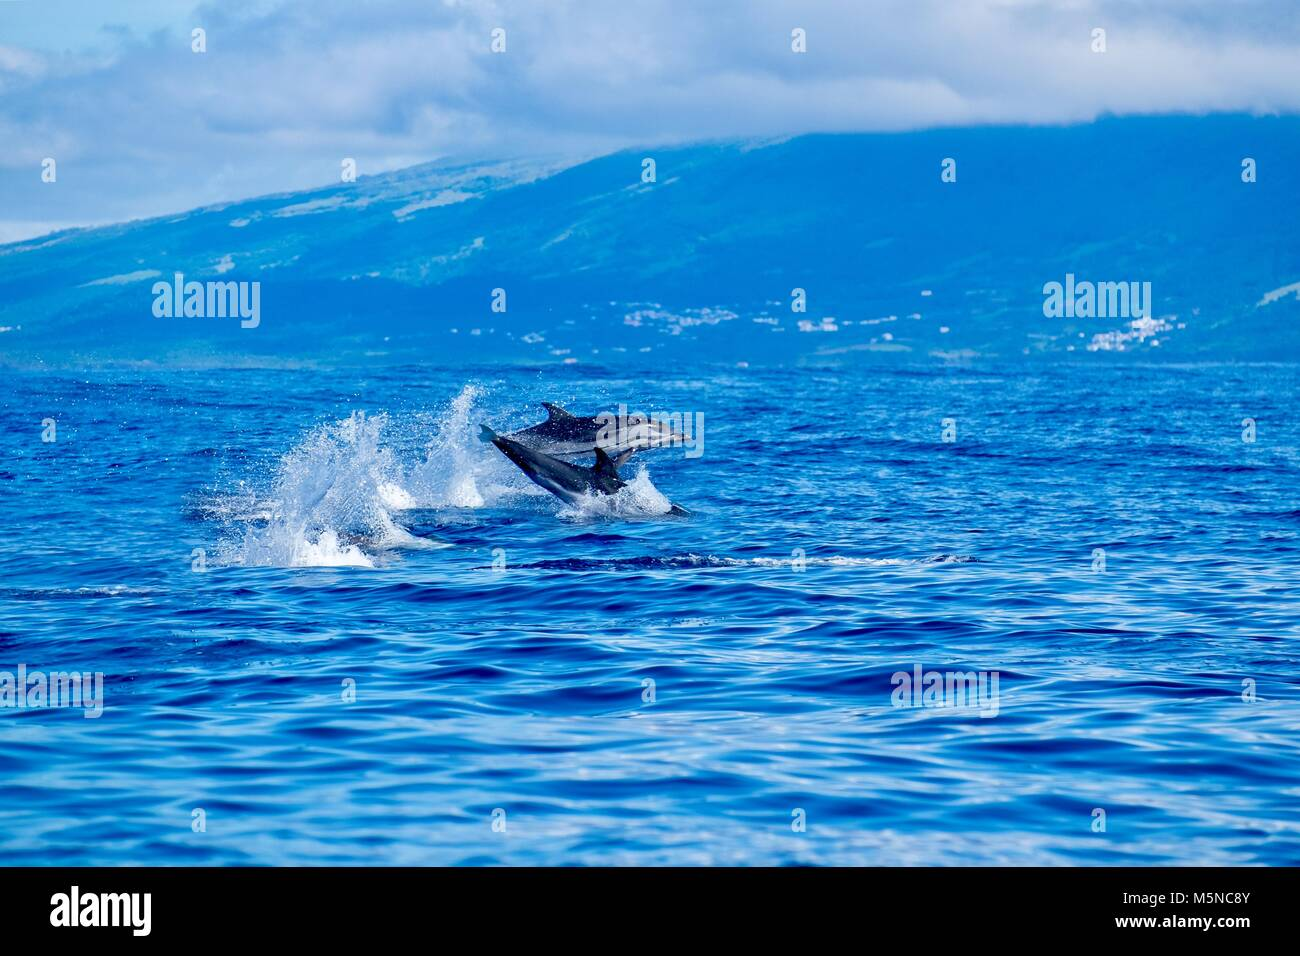 Striped dolphins skimming across the ocean near Pico island - Stock Image